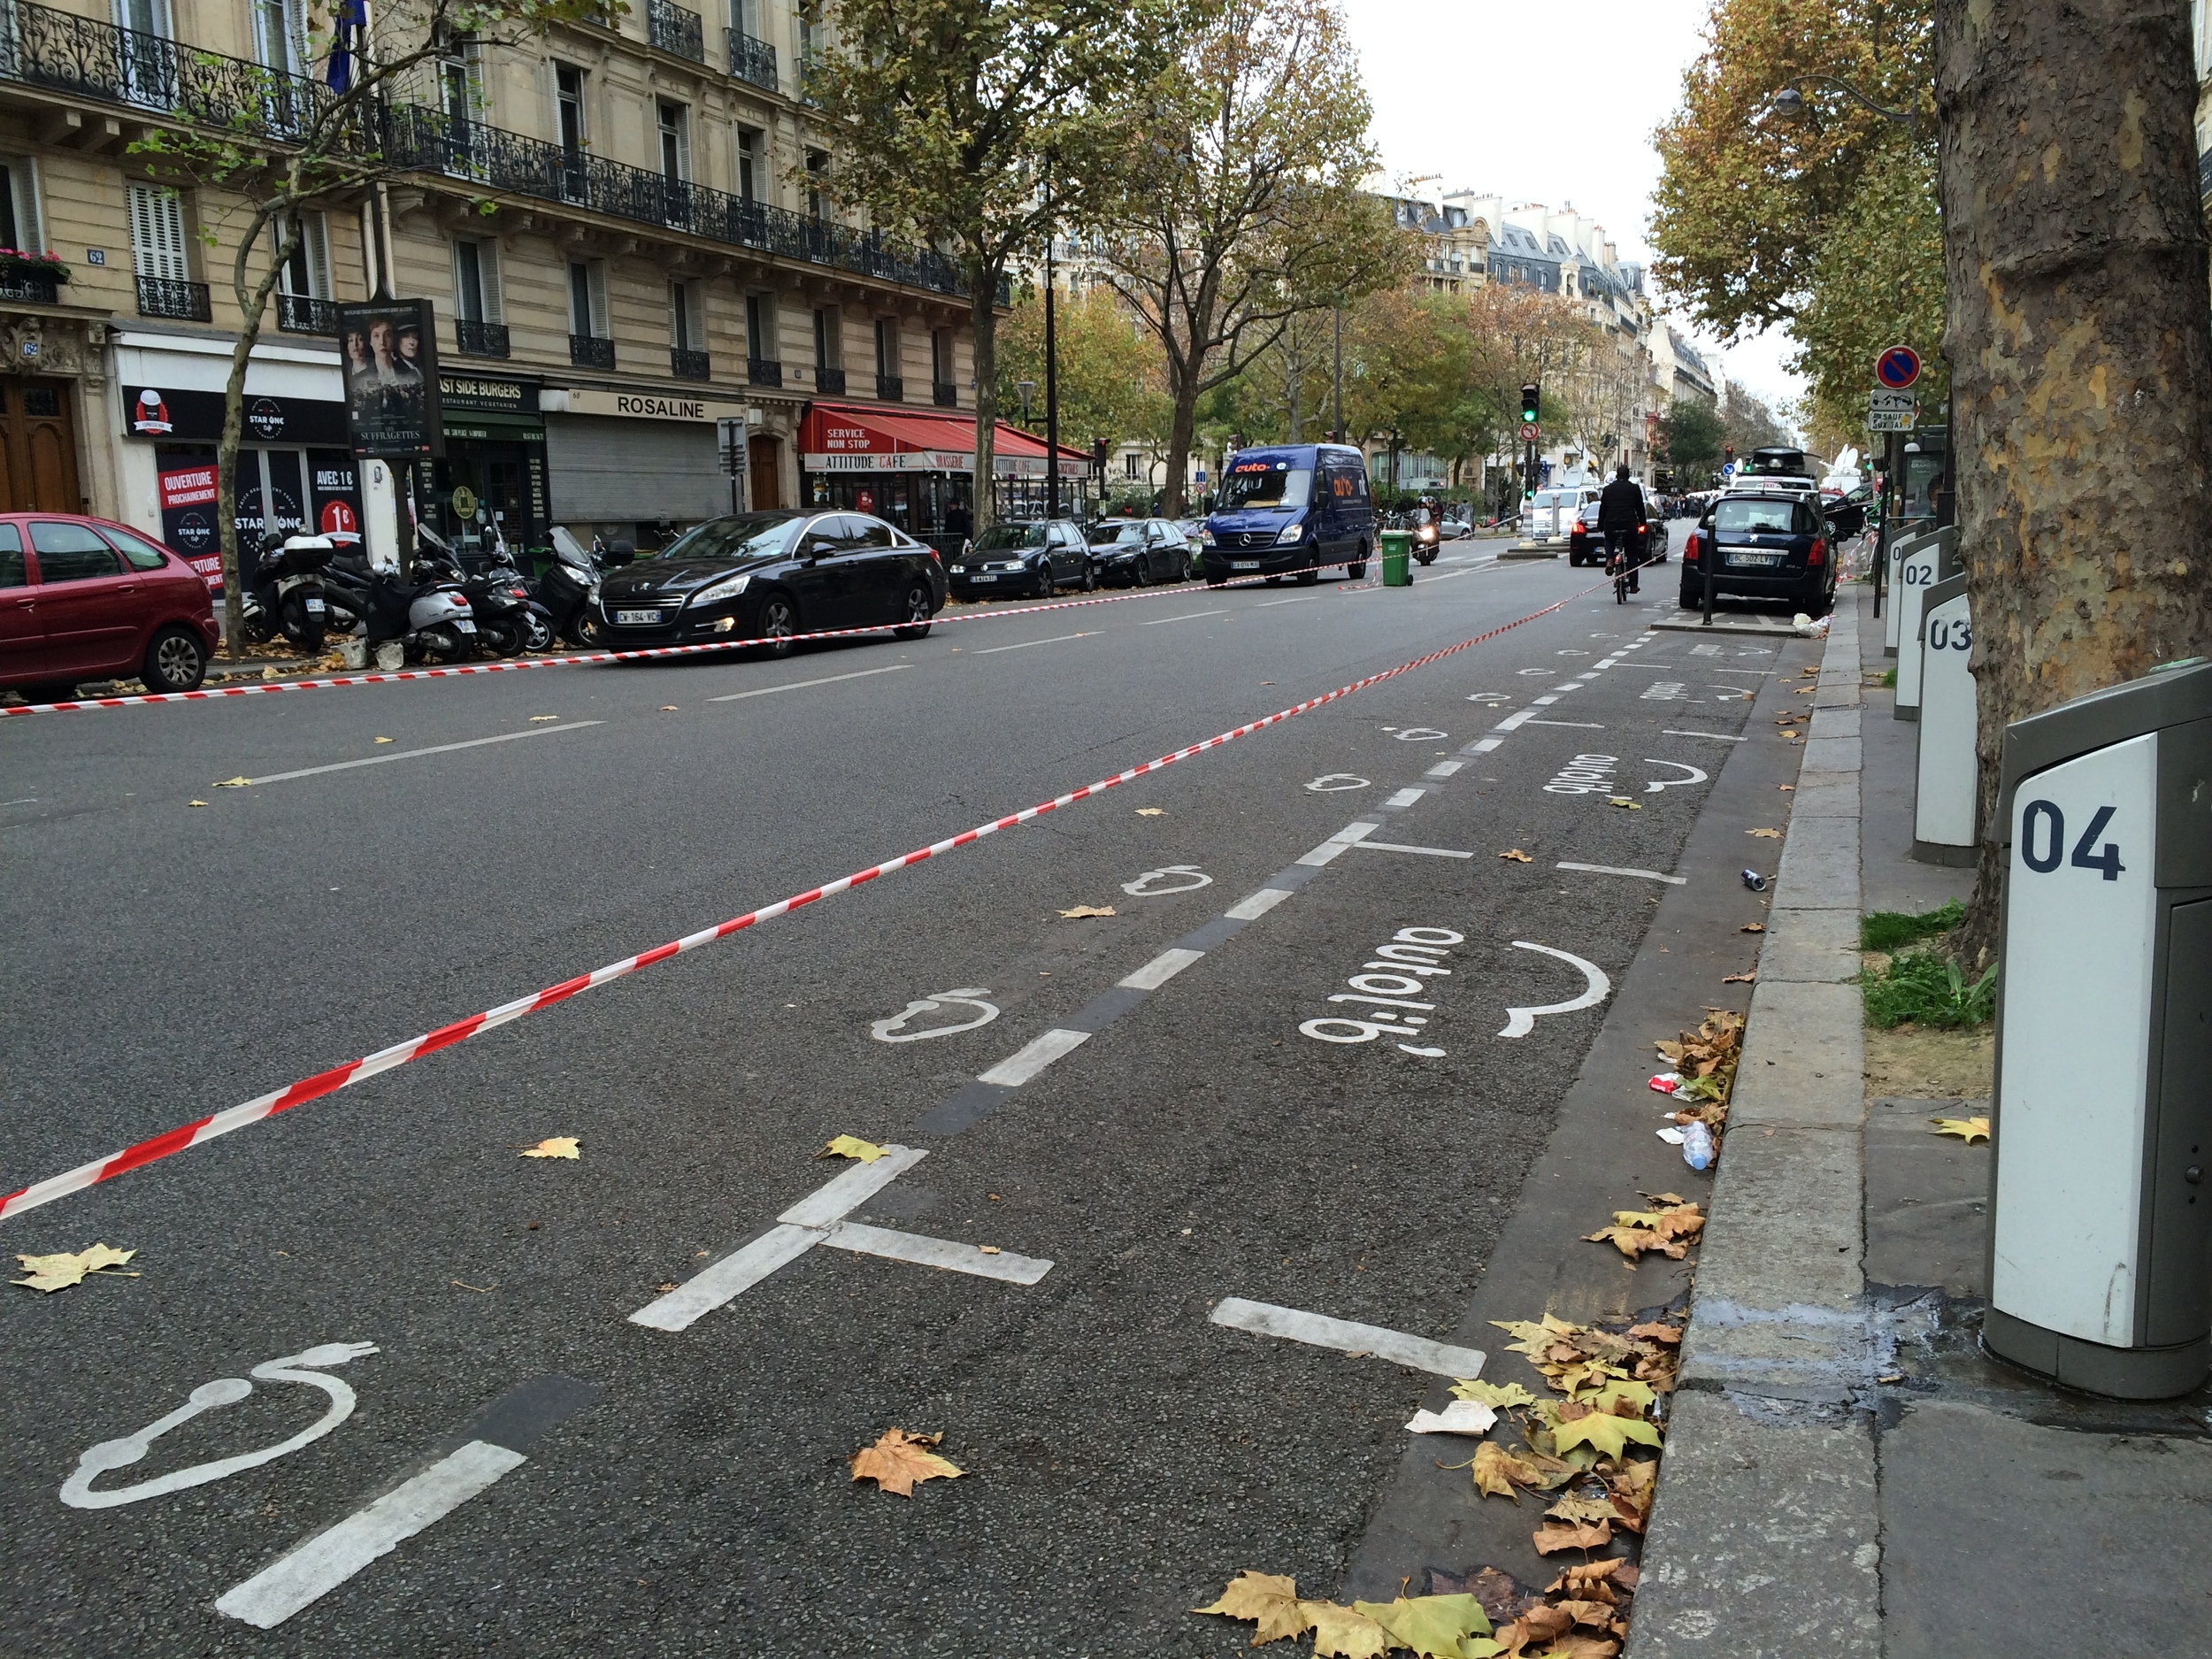 Saturday Morning on Boulevard Voltaire